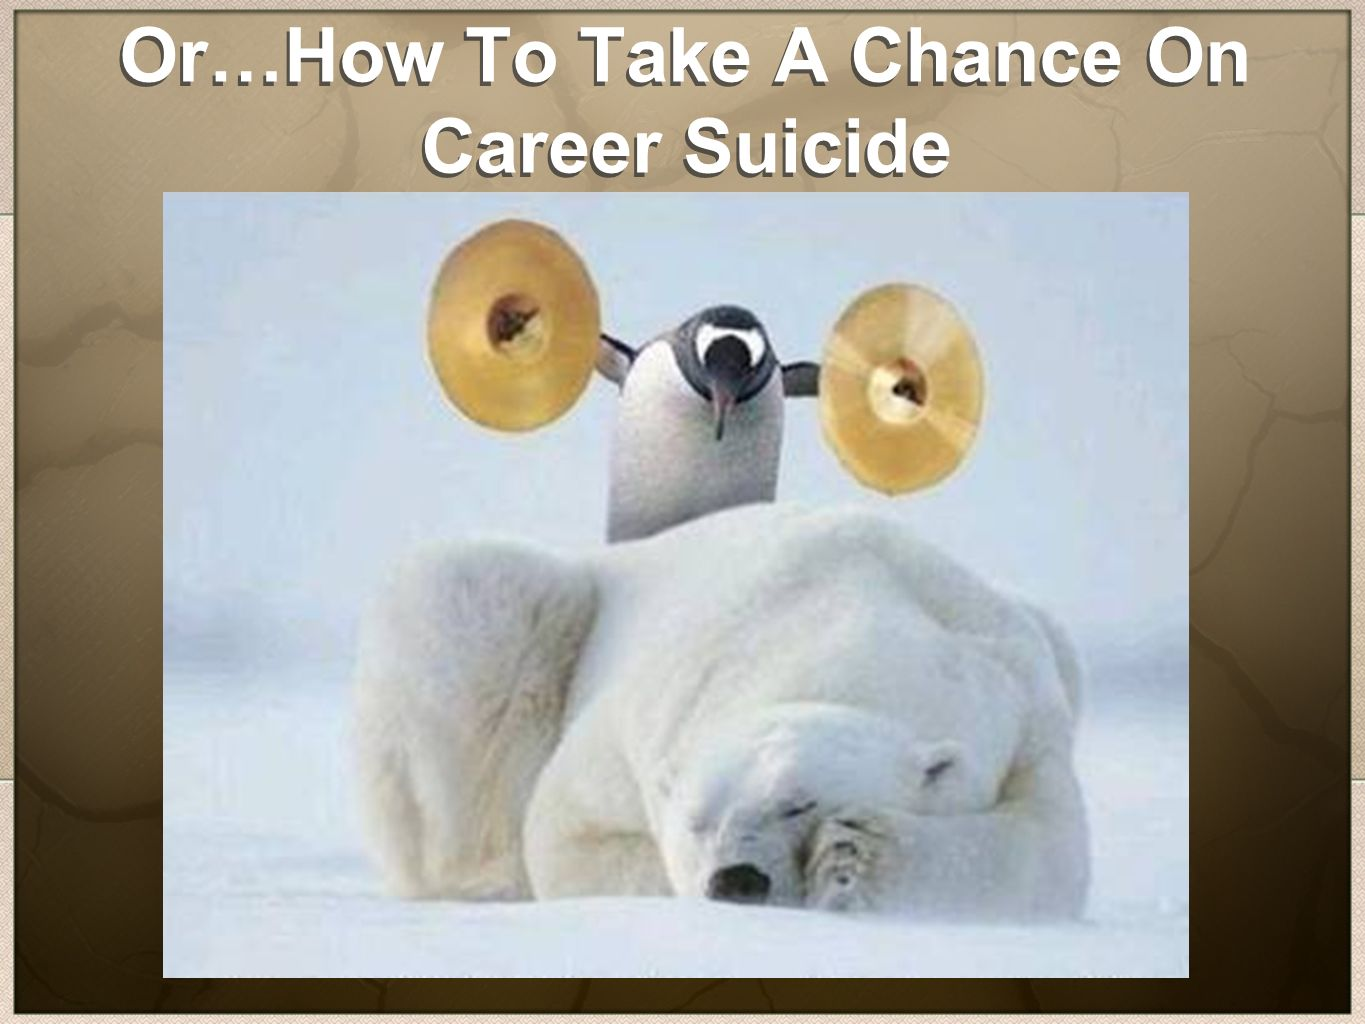 Or…How To Take A Chance On Career Suicide